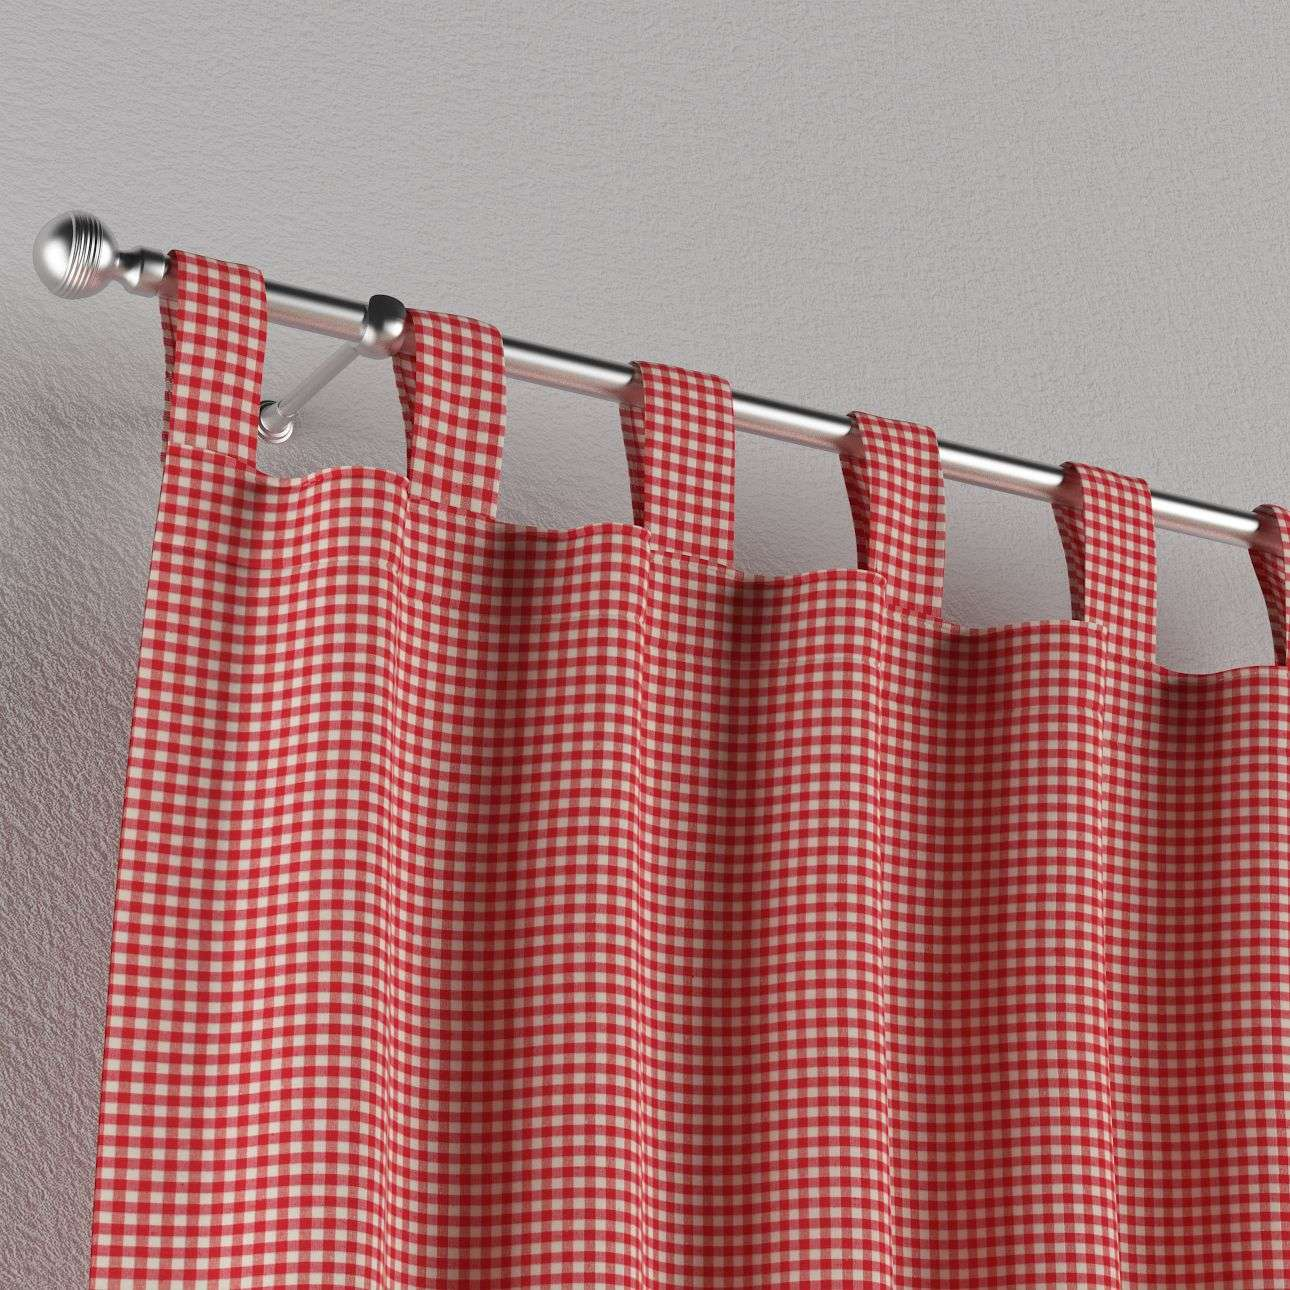 Tab top curtains 130 x 260 cm (51 x 102 inch) in collection Quadro, fabric: 136-15